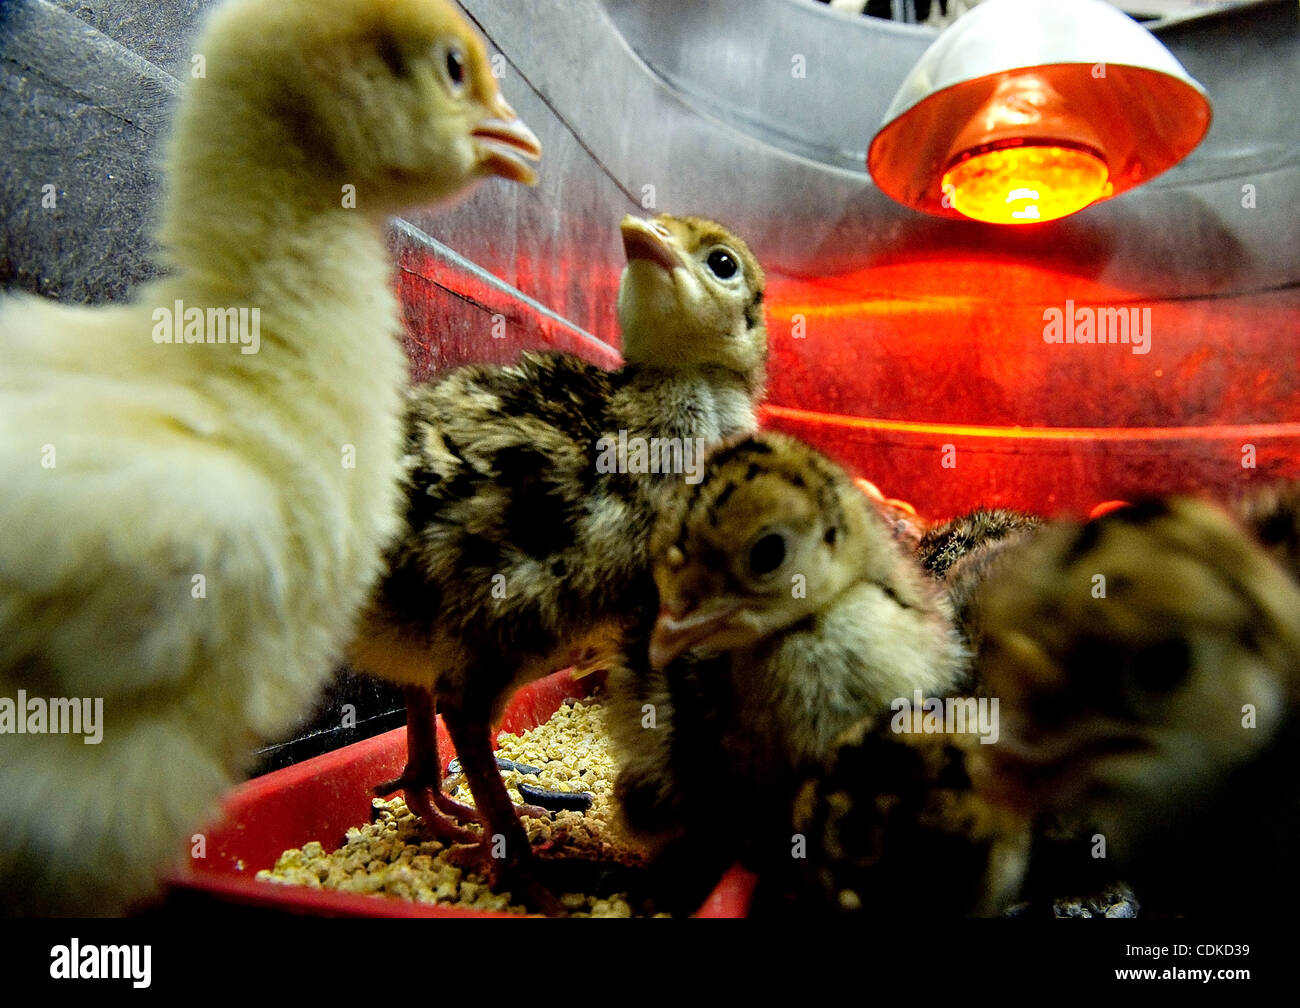 Mar. 16, 2011 - Roseburg, Oregon, U.S - Days old turkey chicks keep warm under a heat lamp at Coastal Farm and Ranch - Stock Image